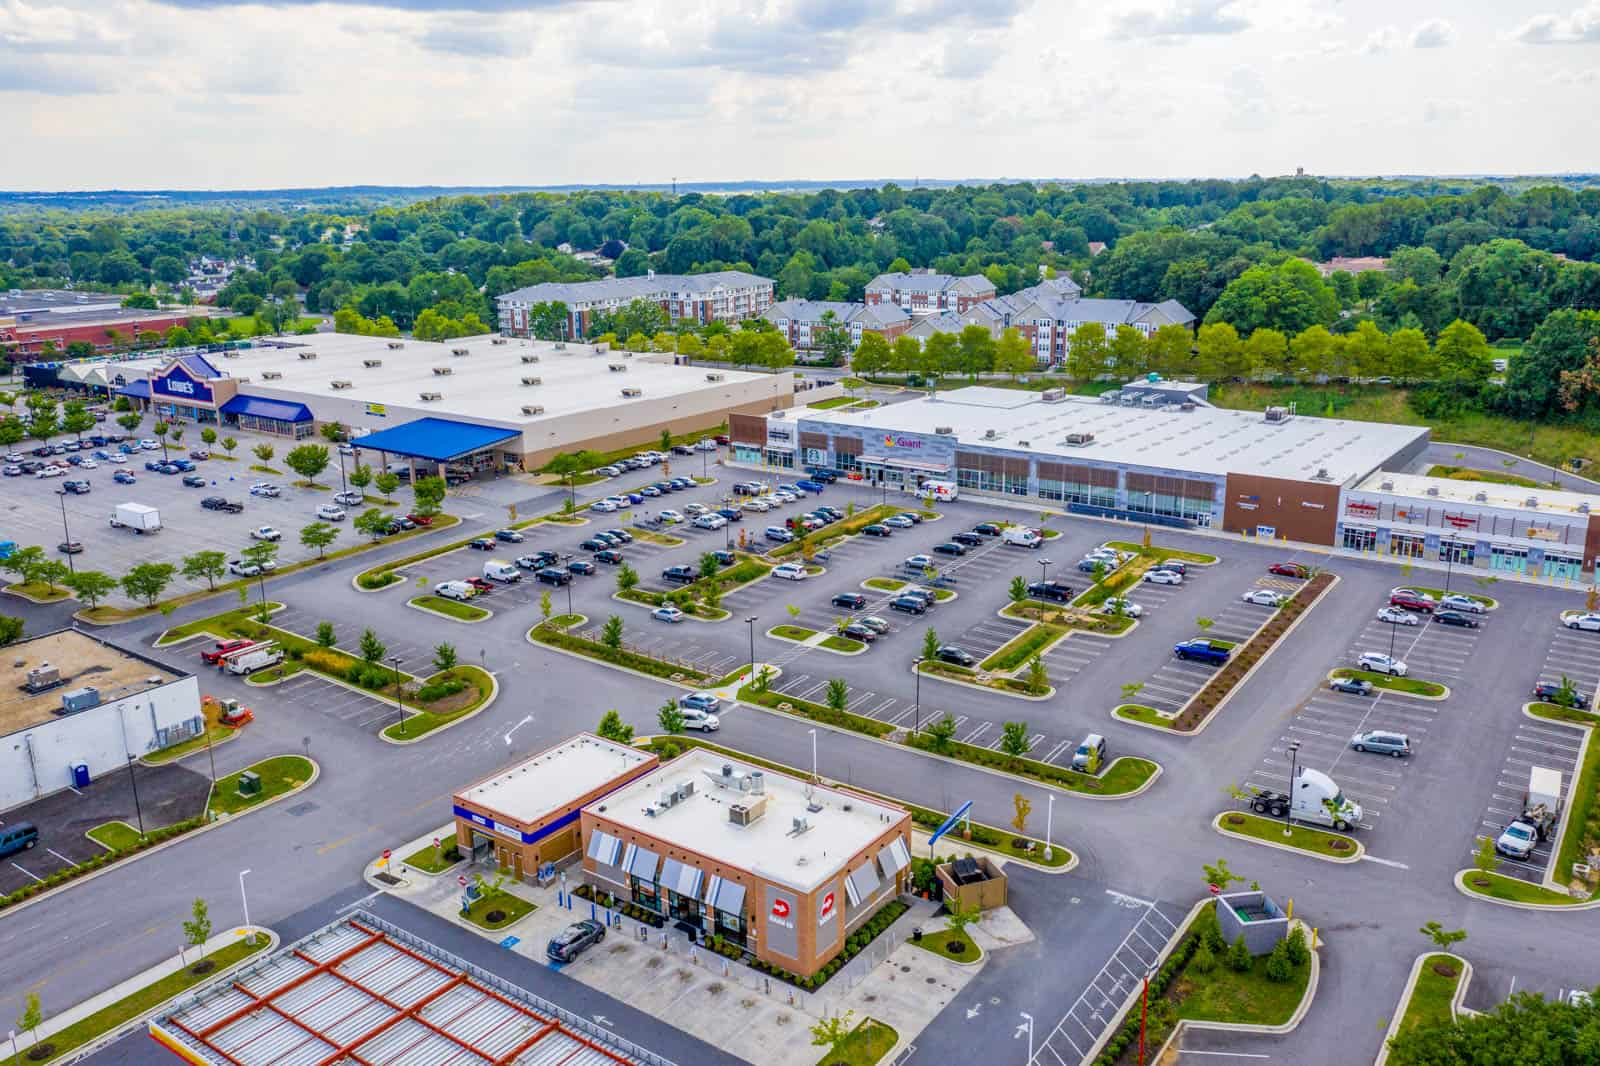 aerial drone photo of shopping plaza in Baltimore, Maryland